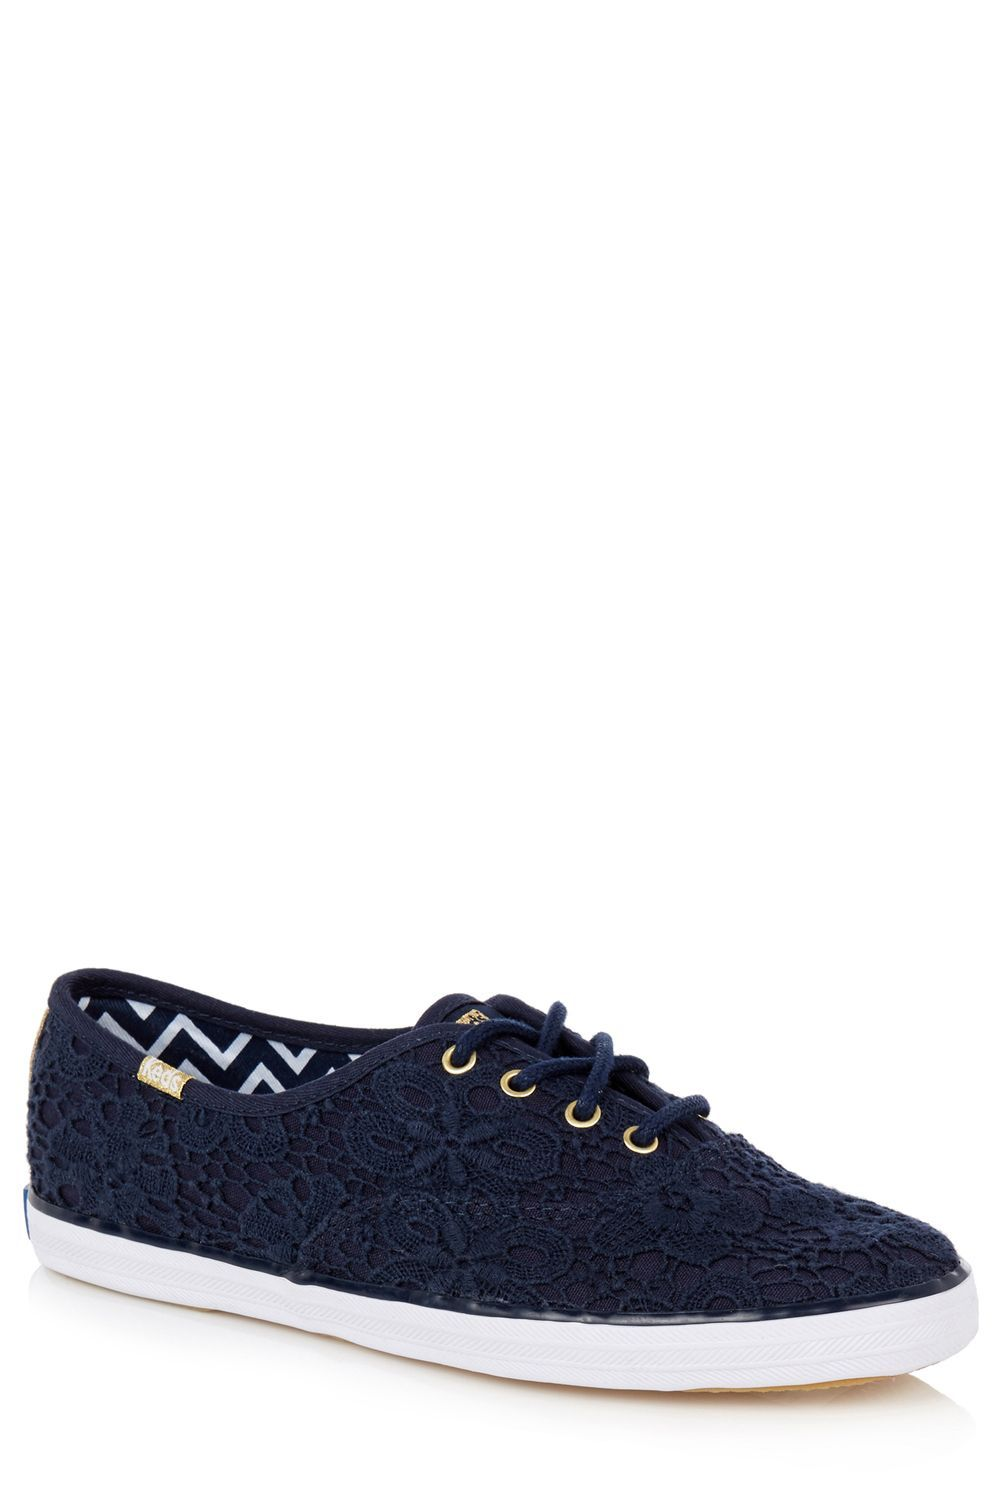 Oasis Crochet Lace Up Trainer, Navy